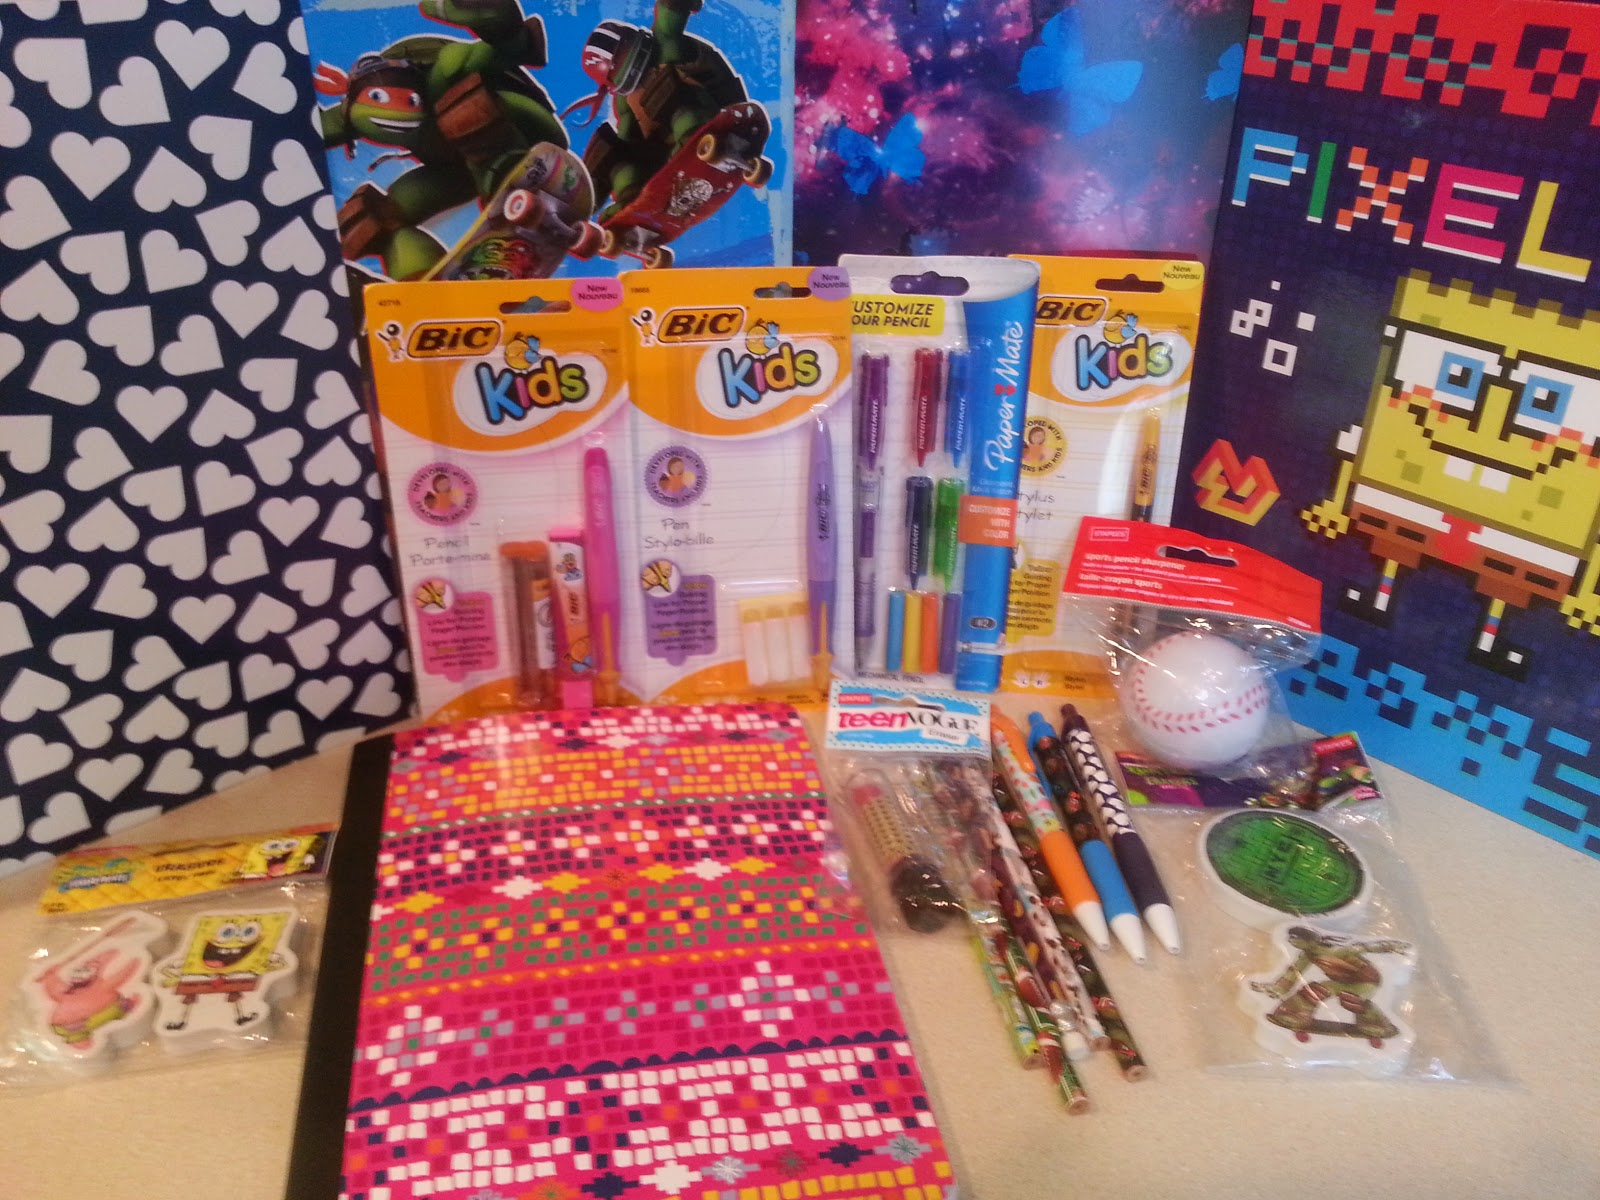 Enter the Back to School with Staples Giveaway. Ends 8/31.